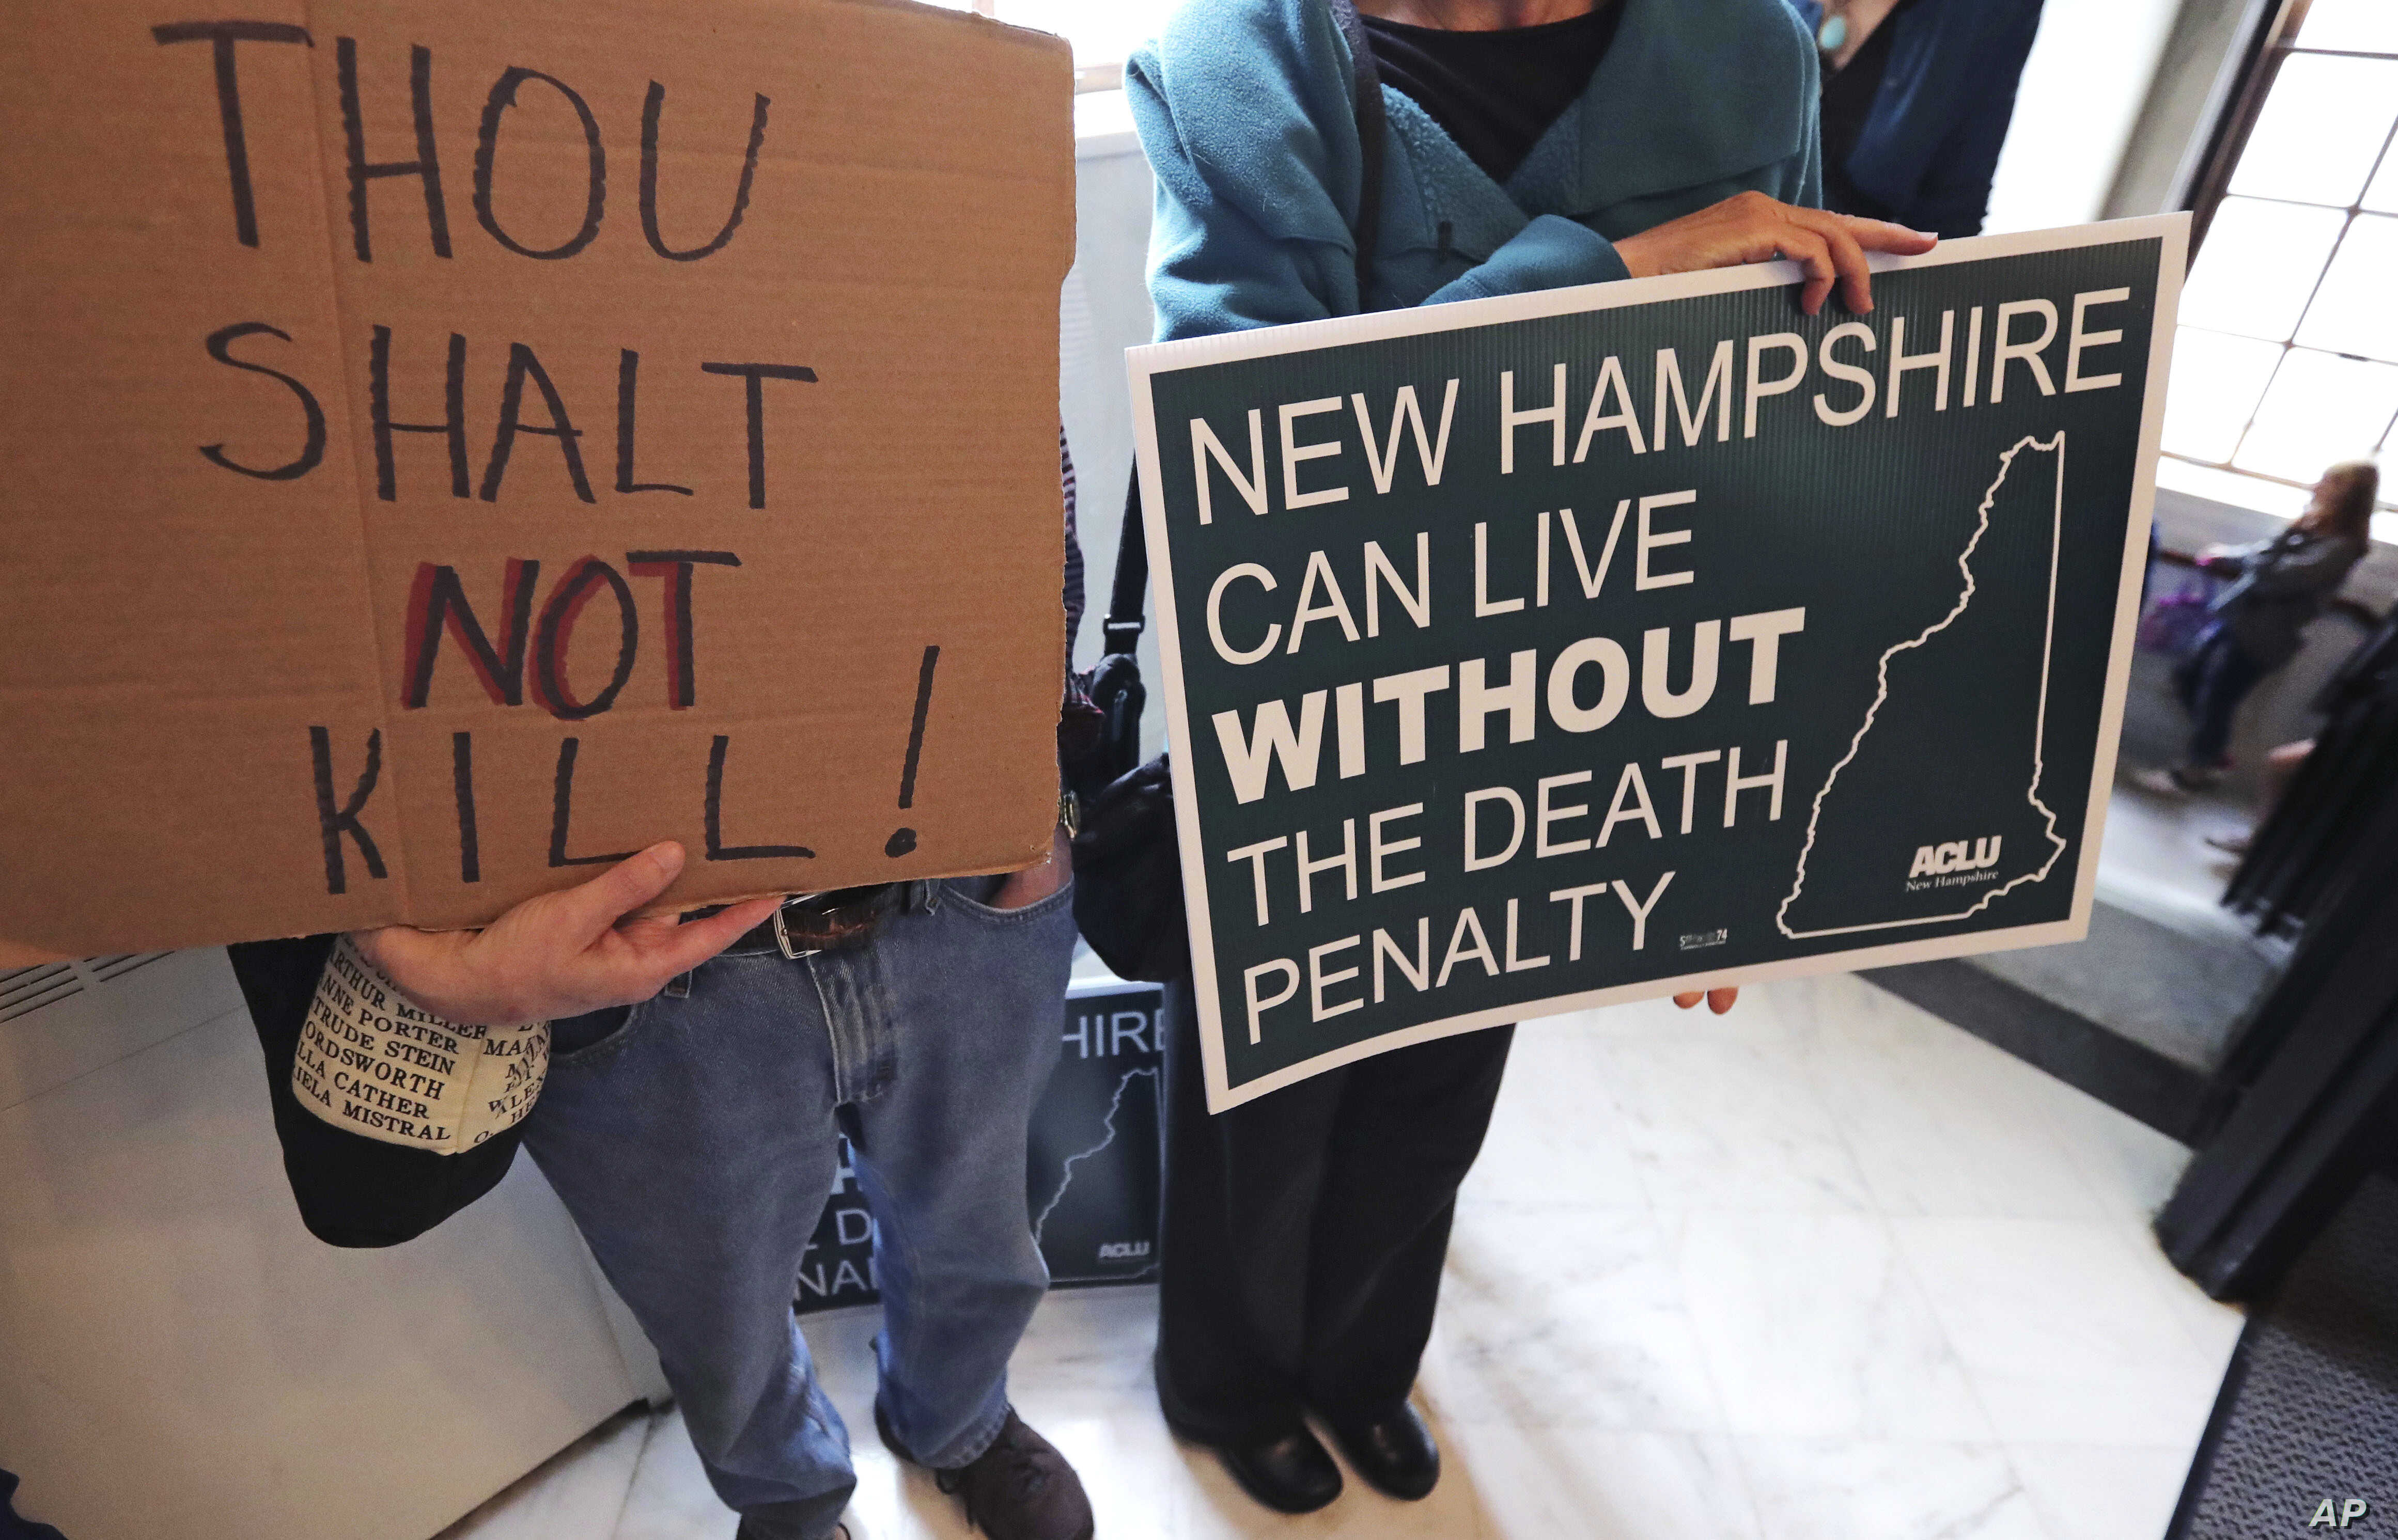 Protesters gather outside the Senate Chamber prior to a vote on the death penalty at the State House in Concord, N.H., May 30, 2019.